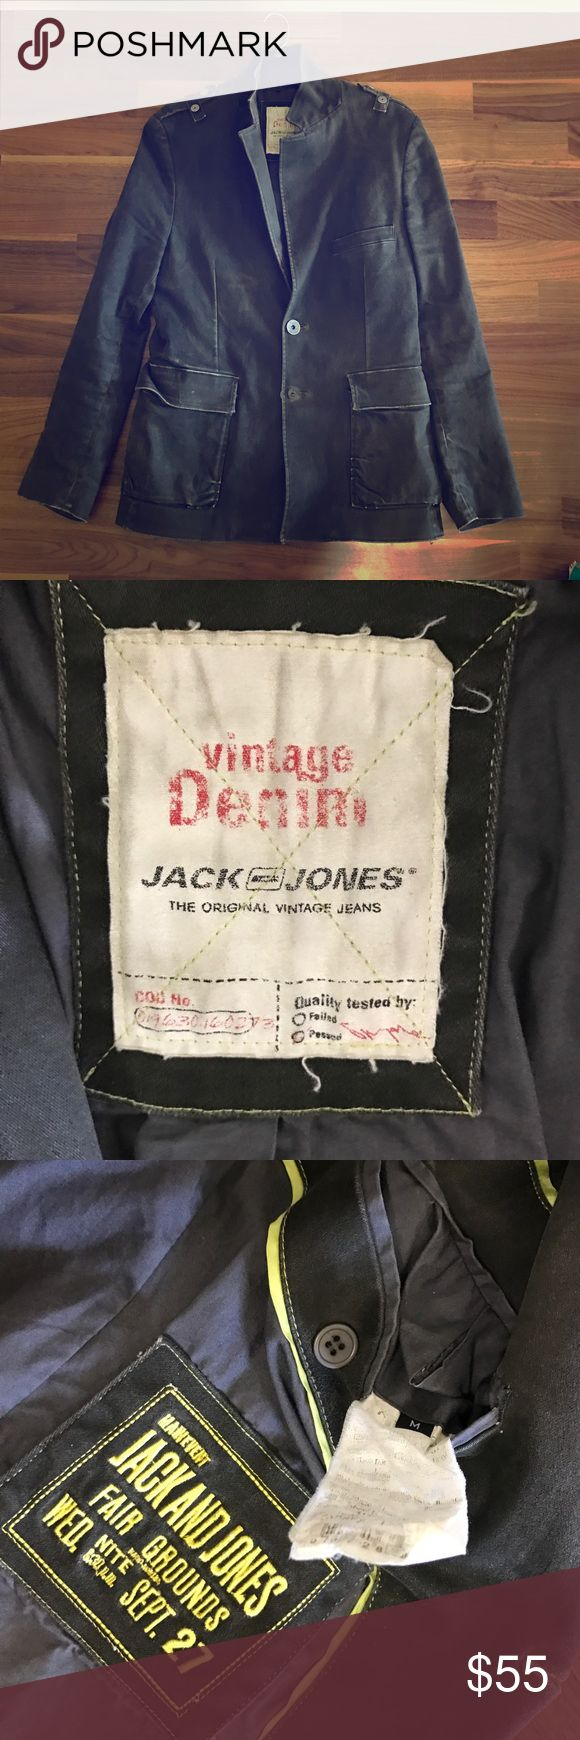 Vintage Denim Jacket Grey distressed denim blazer style jacket by Jack and Jones Vintage Denim Jackets & Coats